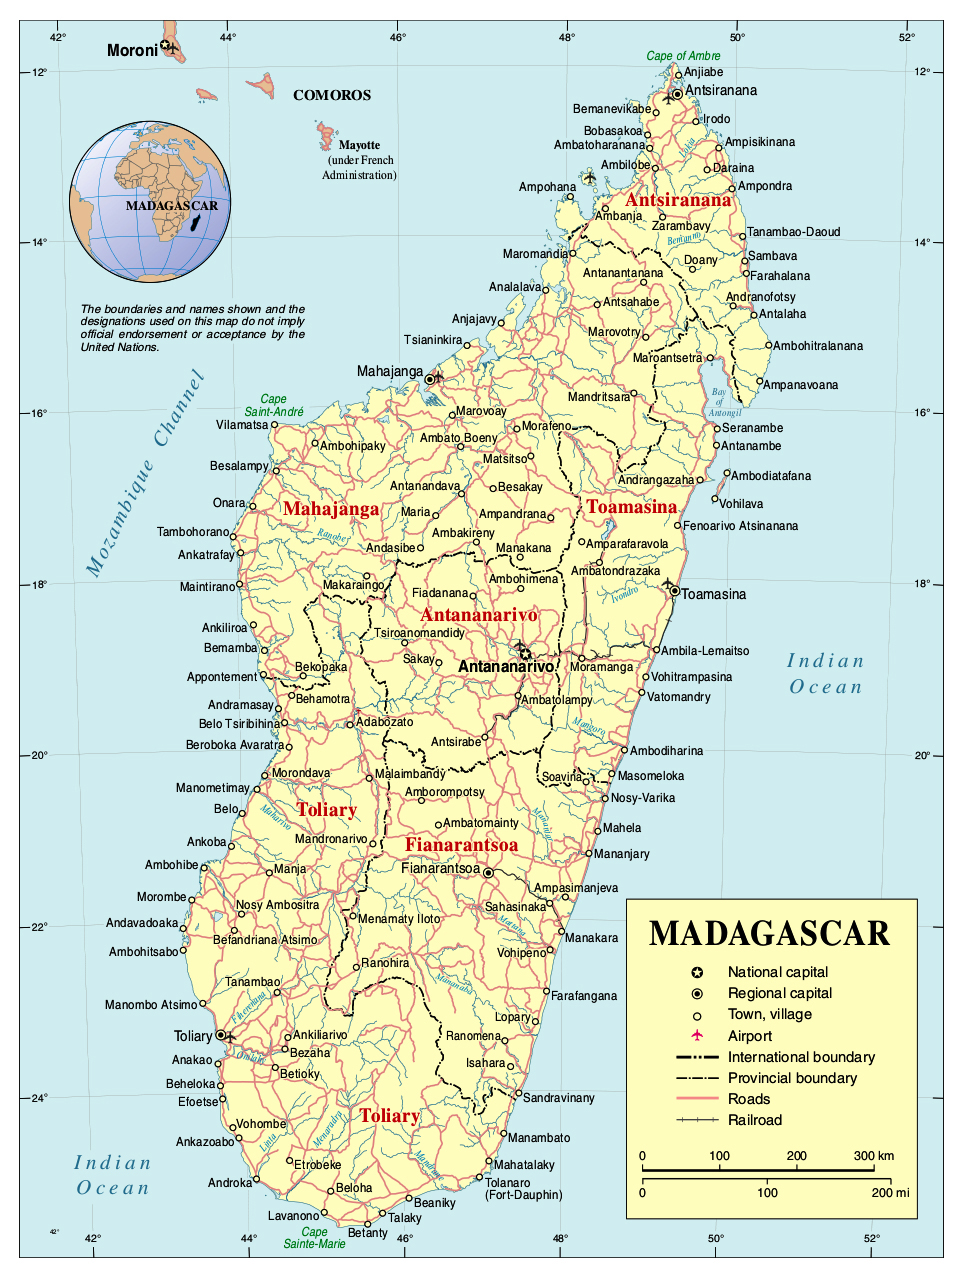 Full political map of Madagascar Madagascar full political map